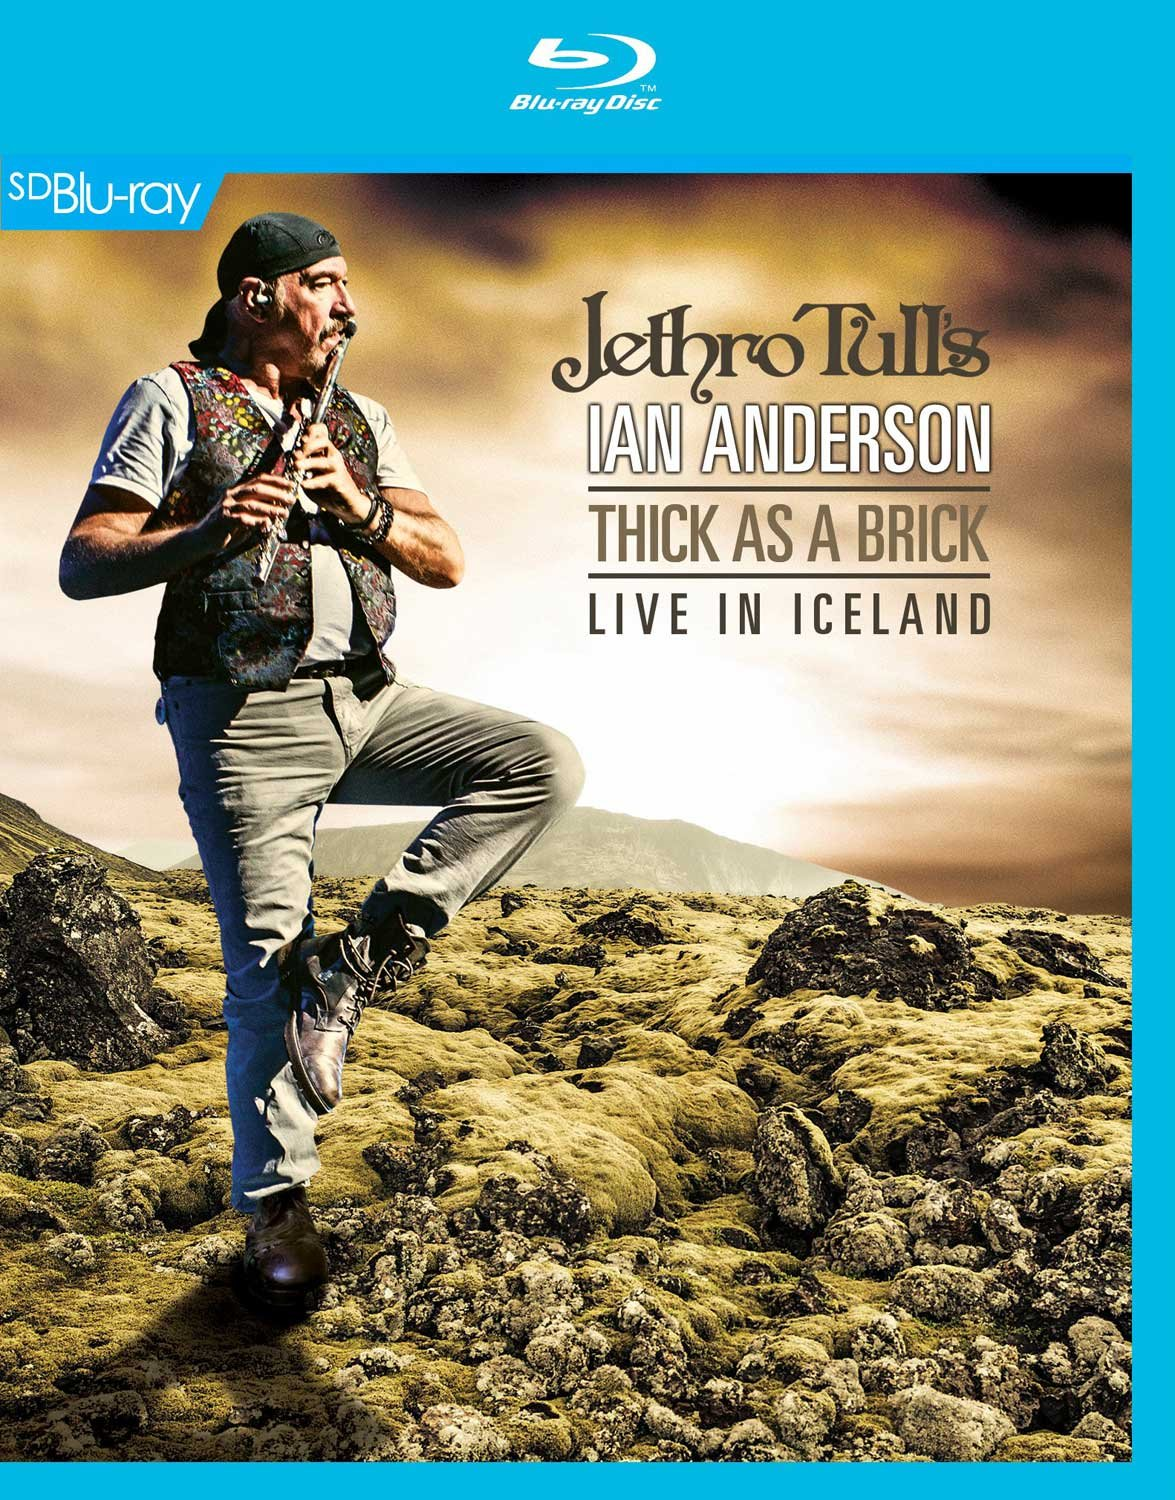 Blu-ray : Jethro Tull's Ian Anderson - Thick As a Brick Live in Iceland (Blu-ray)